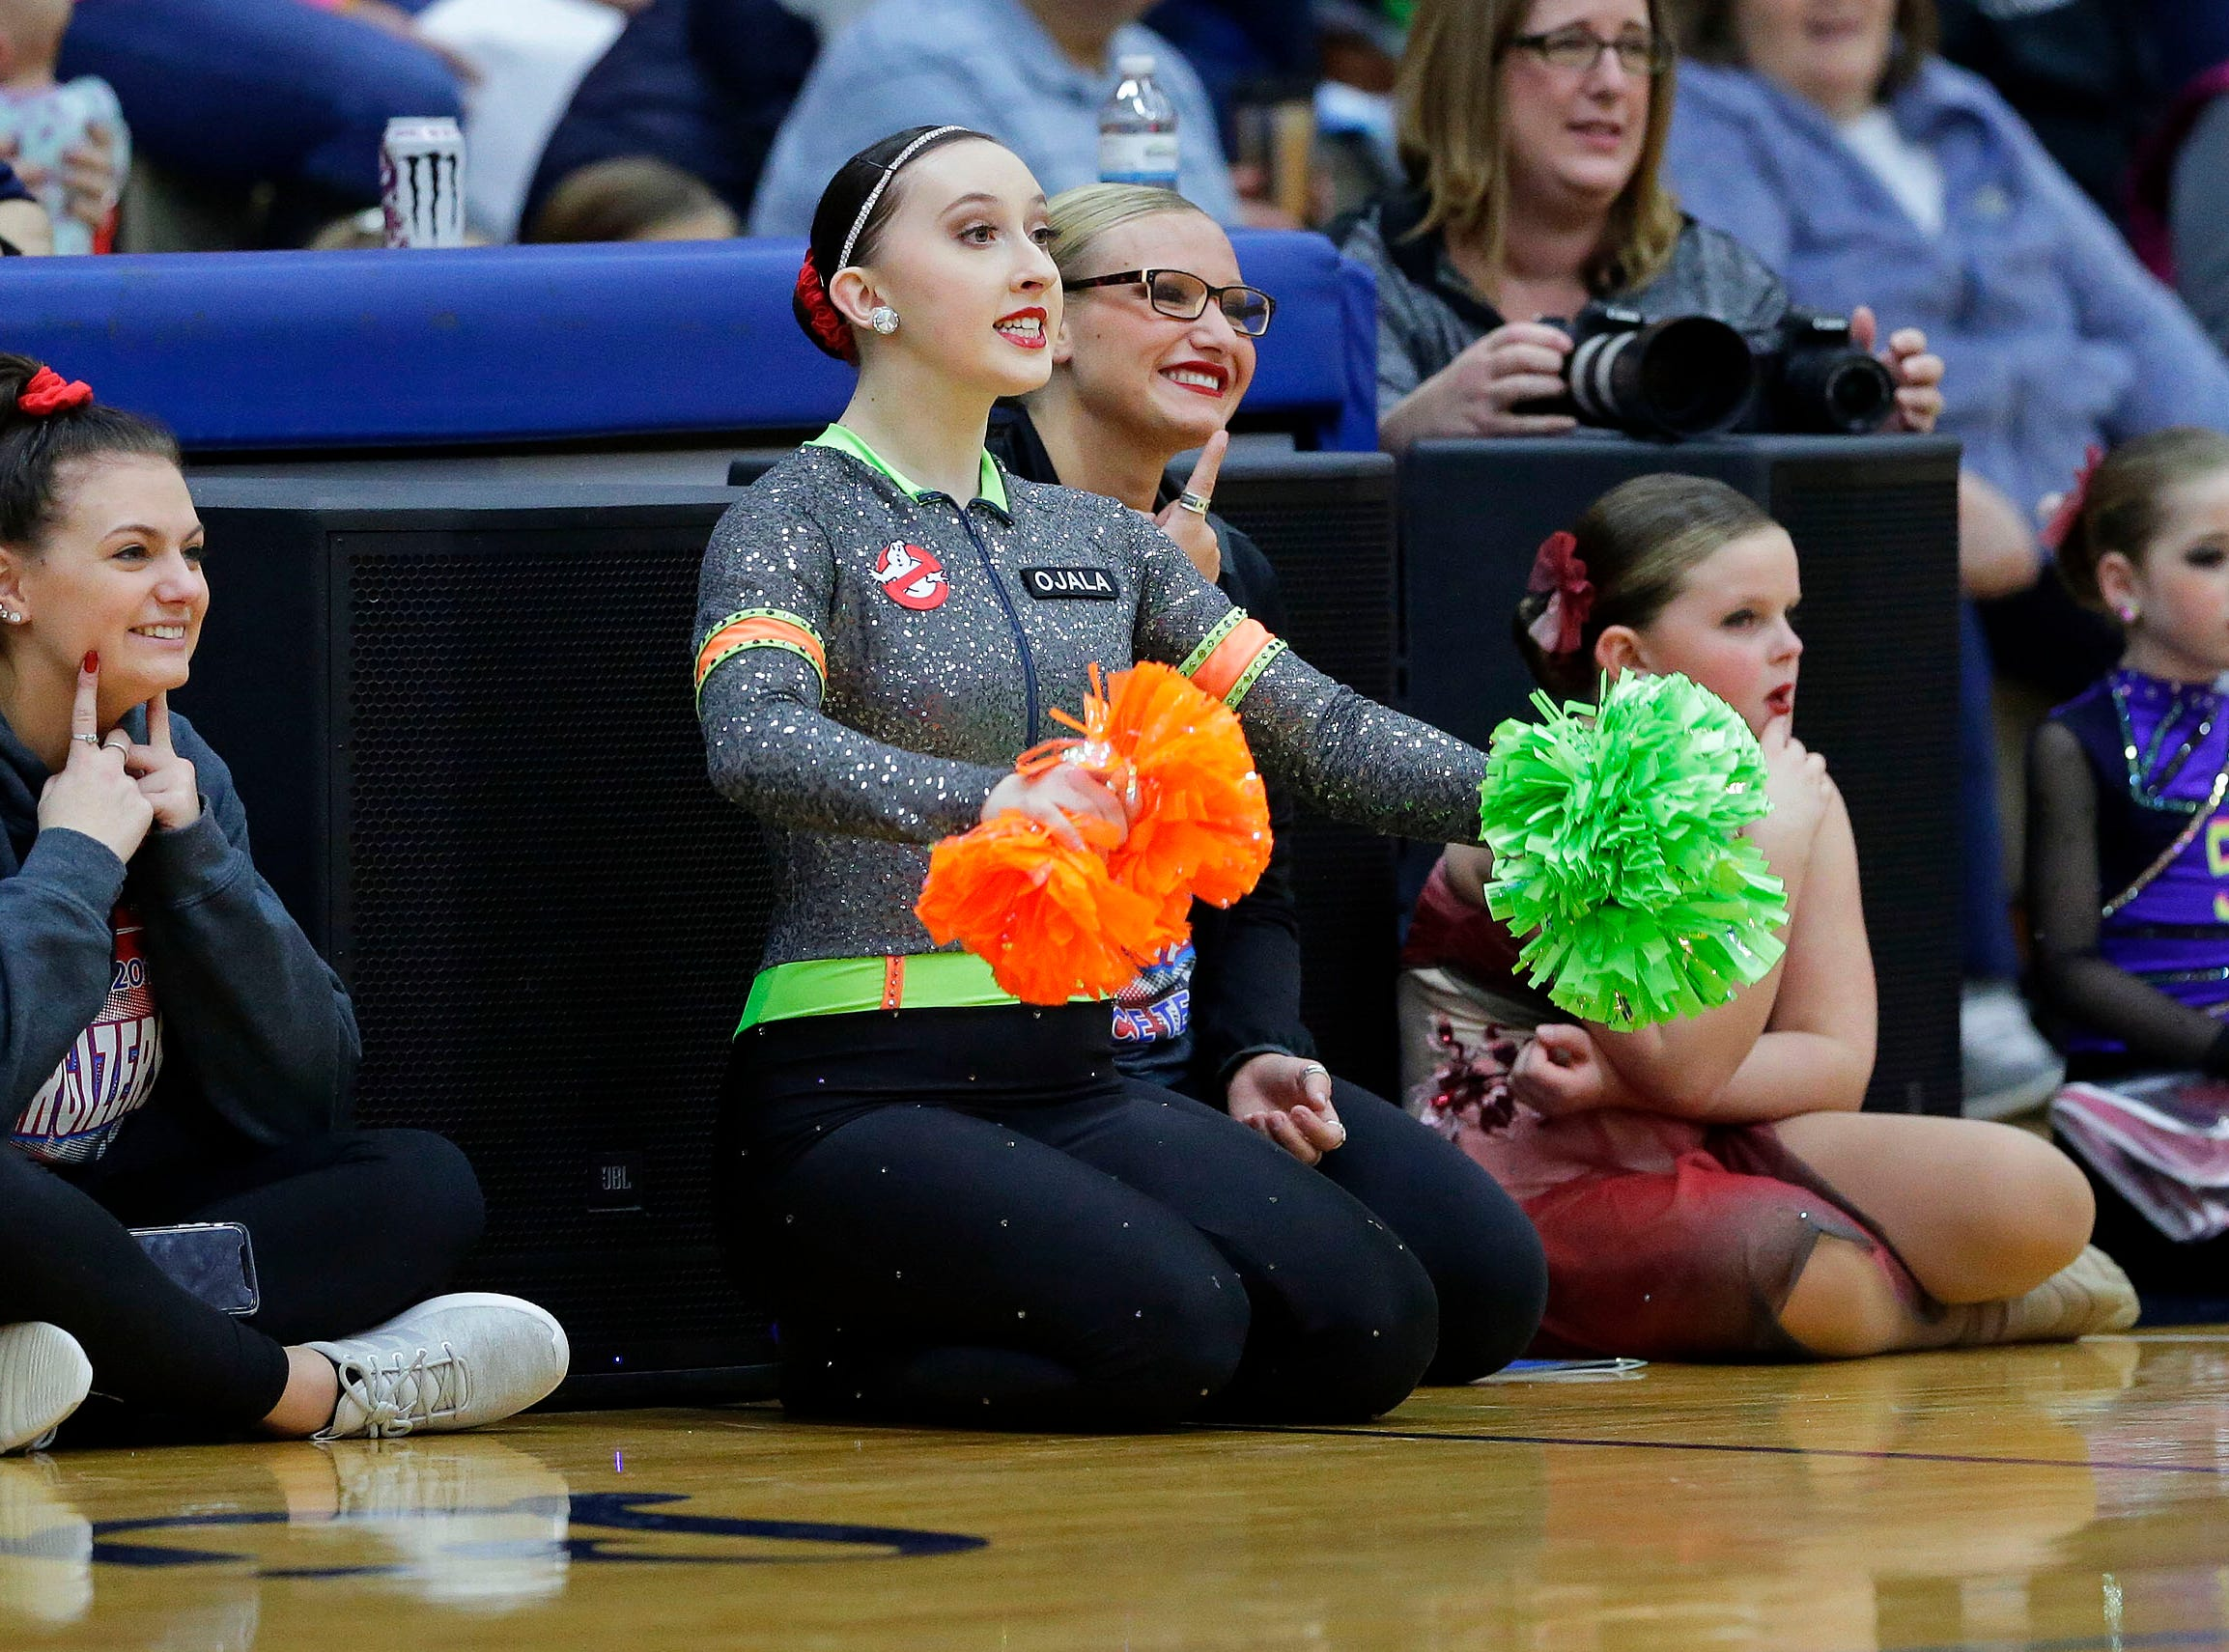 Competitors get coached by Erin Malec, left, Kaylee Ojala, center, and Alexis Trost of Hartford as the Lightning Bolt Explosion Cheer and Dance competition takes place Saturday, January 5, 2019, at Appleton North High School in Appleton, Wis.